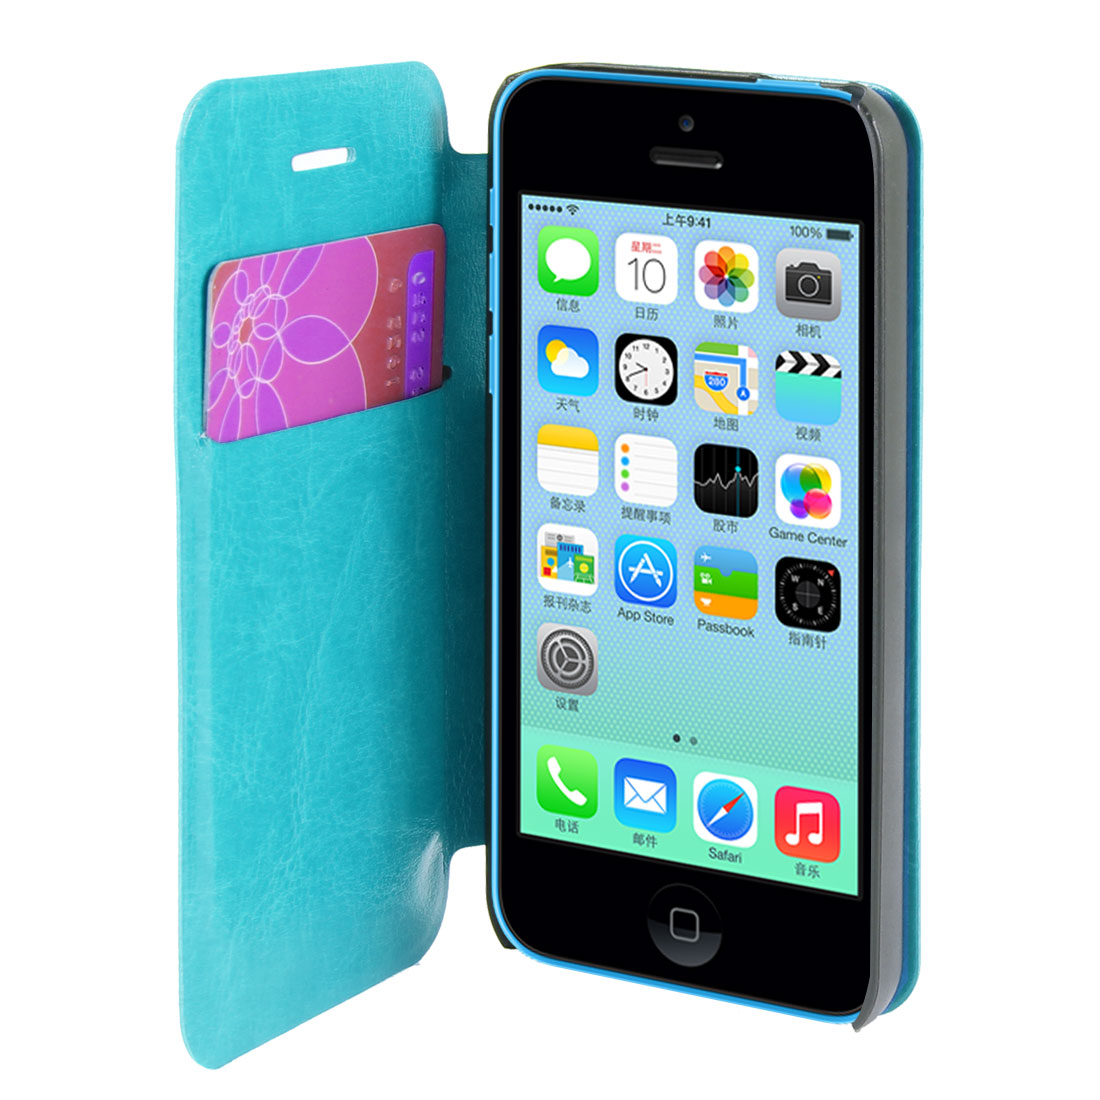 Cyan Faux Leather Flip Stand Pouch Case Cover for Apple iPhone 5C